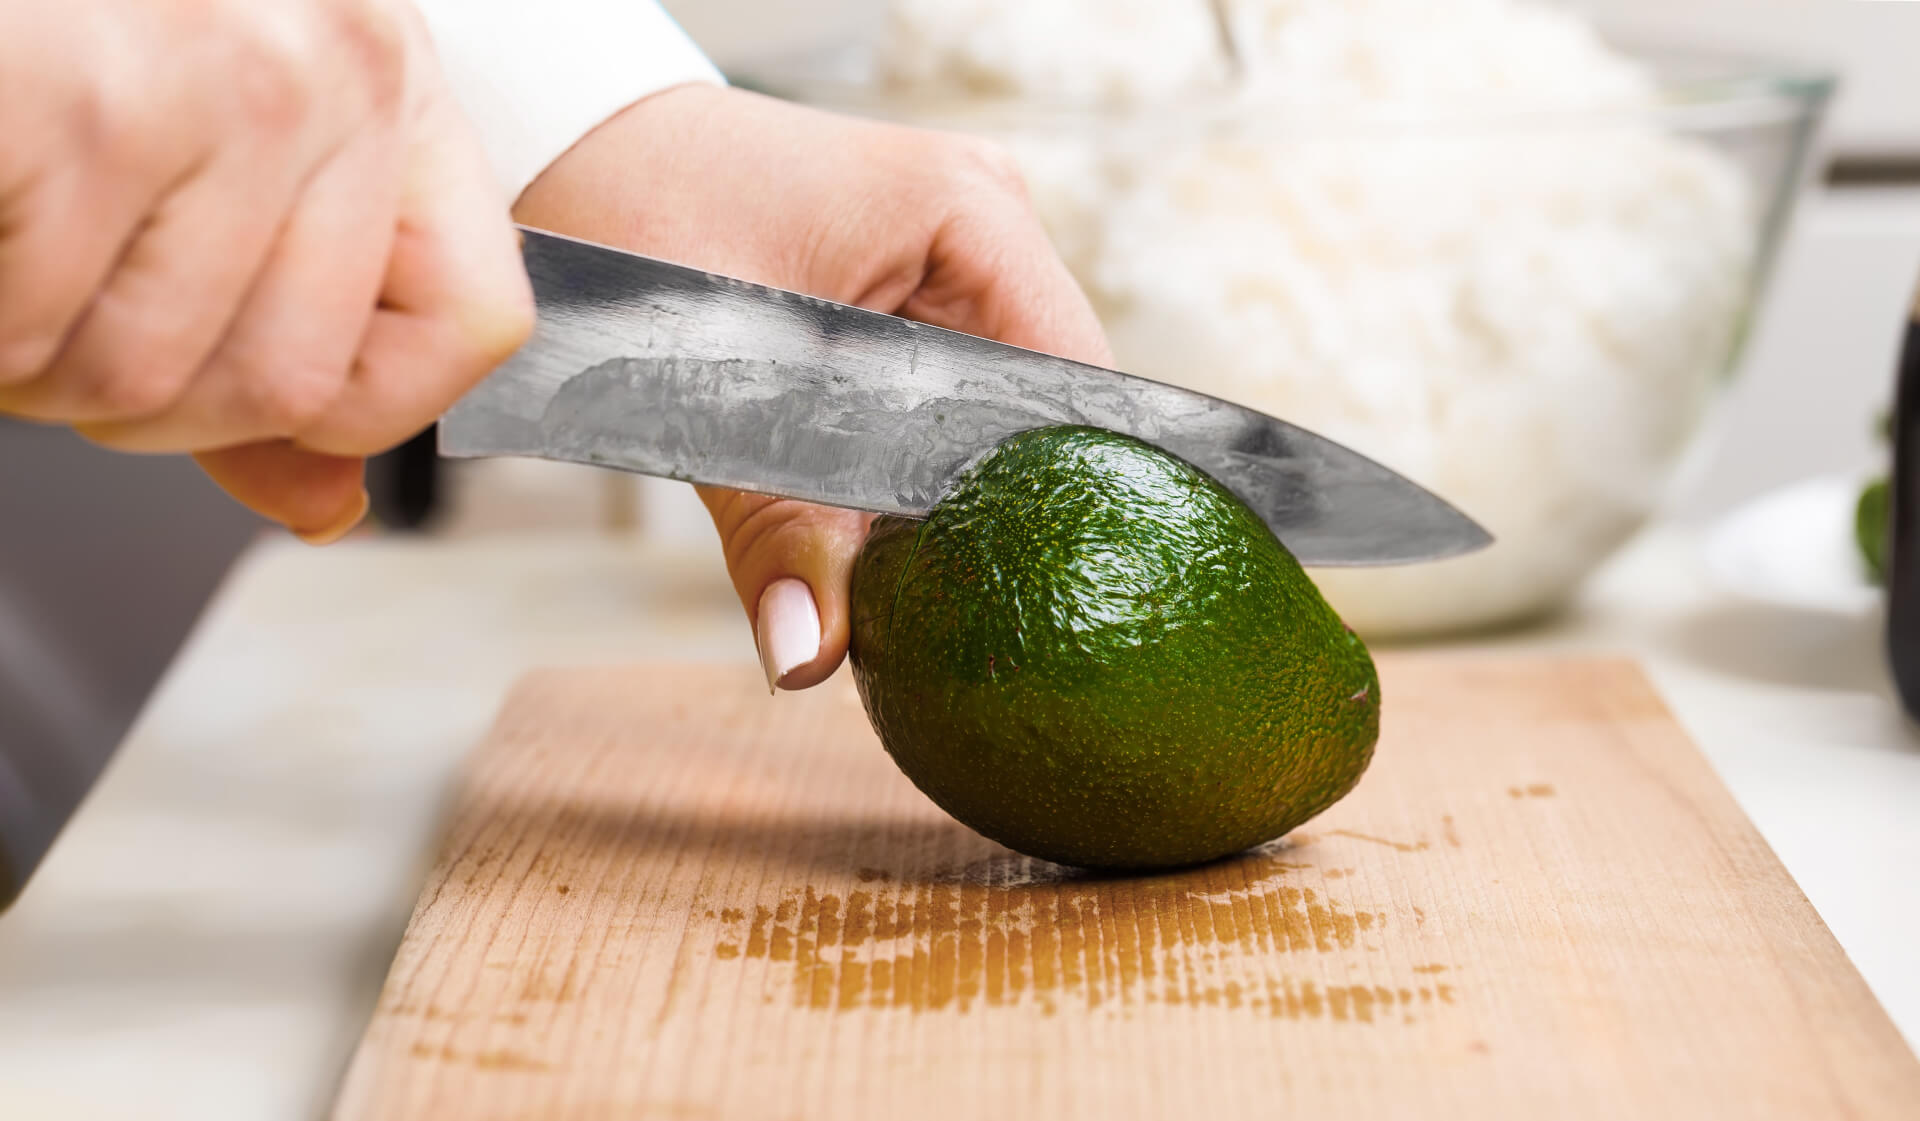 The Slice Is Right: Avocado Image